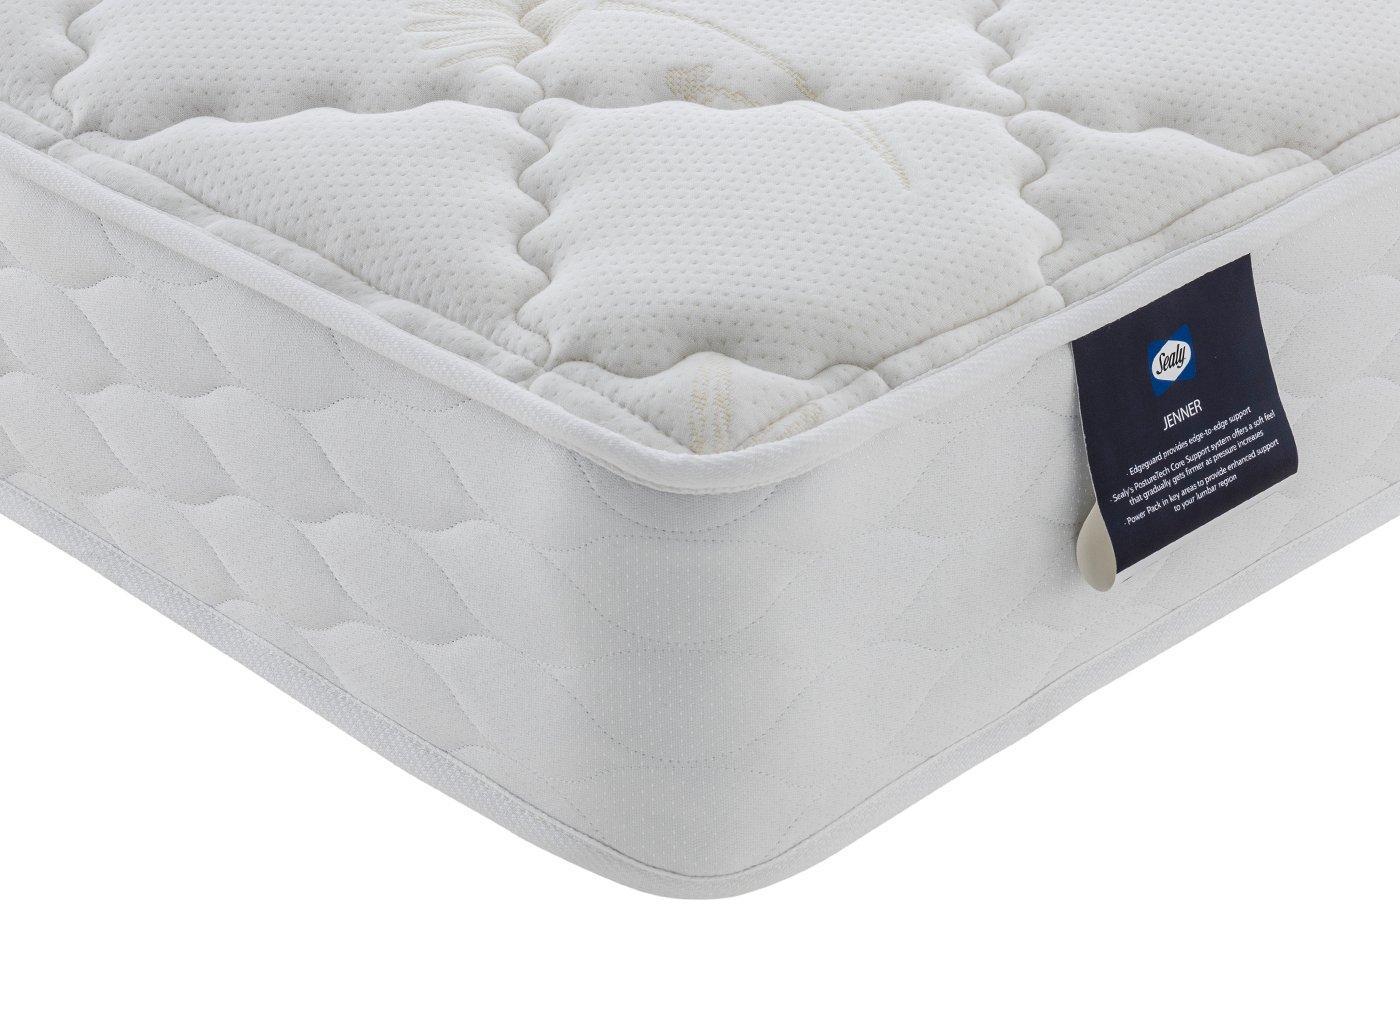 Sealy Posturepedic Backcare Elite Mattress Sealy Mattresses Compare Buy Online Mattress Chooser